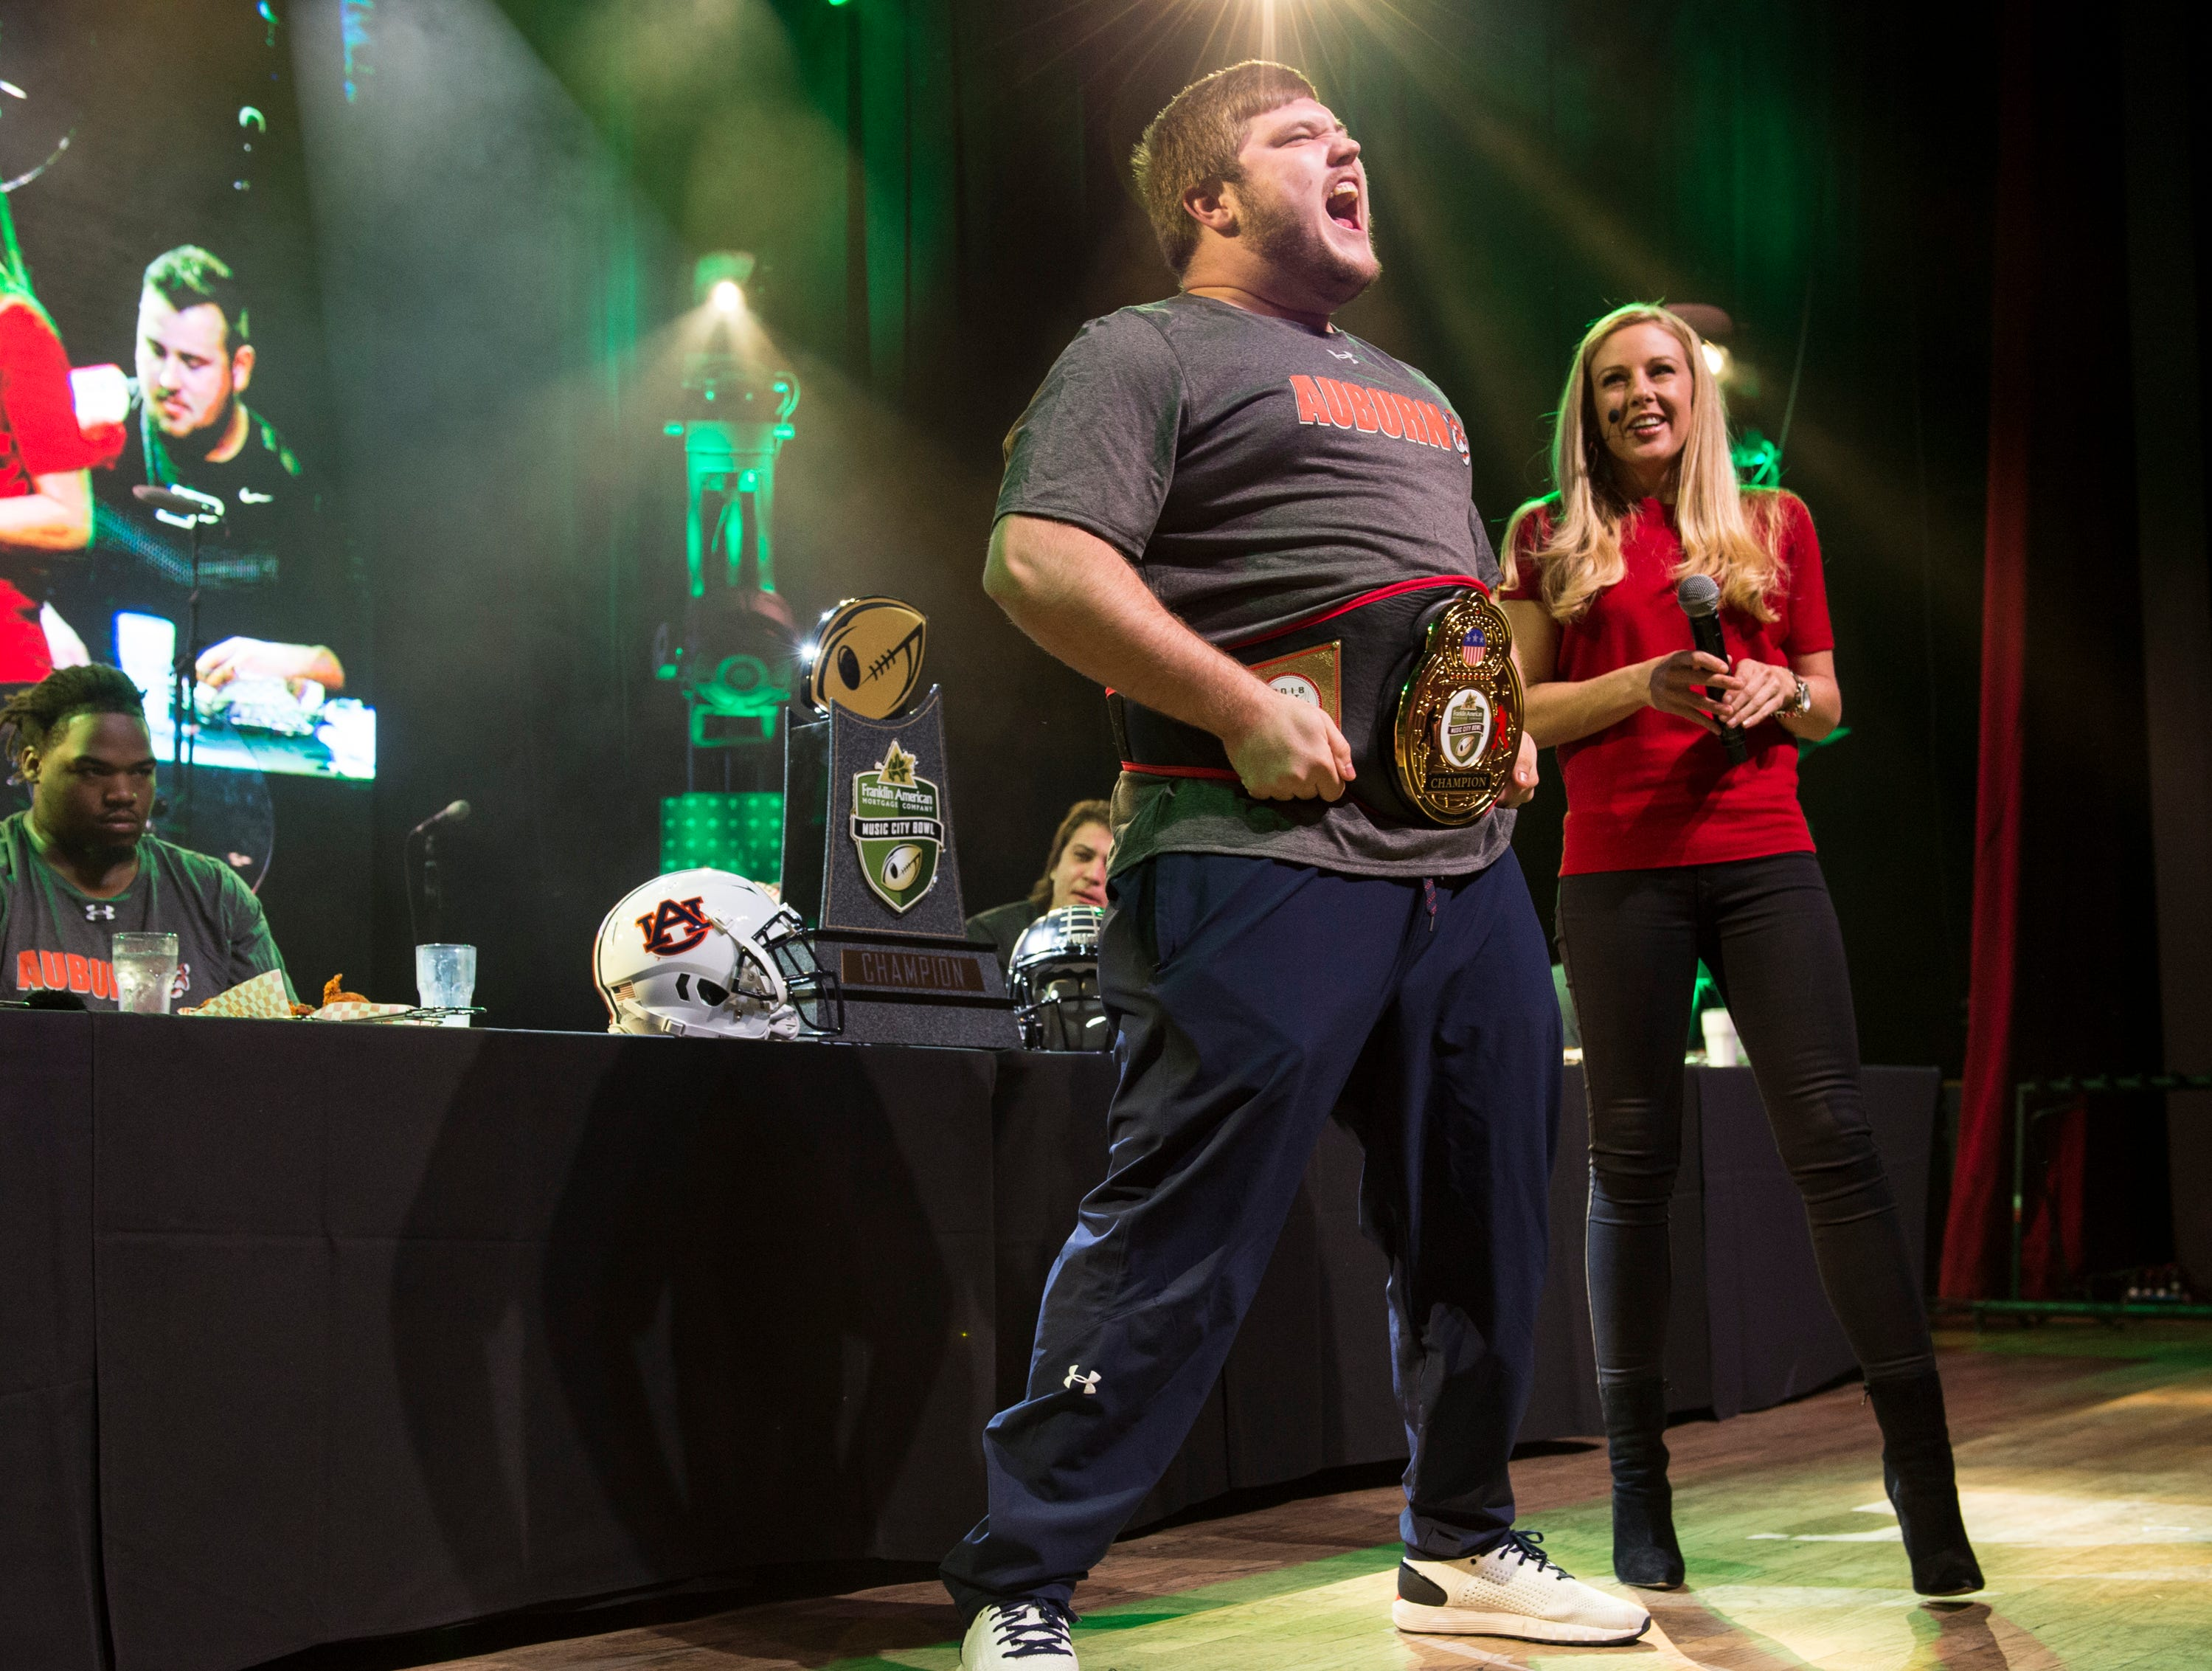 Auburn offensive lineman Peyton Nance (63) reacts after winning the hot chicken eating competition after eating 14 wings in four minutes at Wild Horse Saloon in Nashville, Ten., on Wednesday, Dec. 26, 2018.